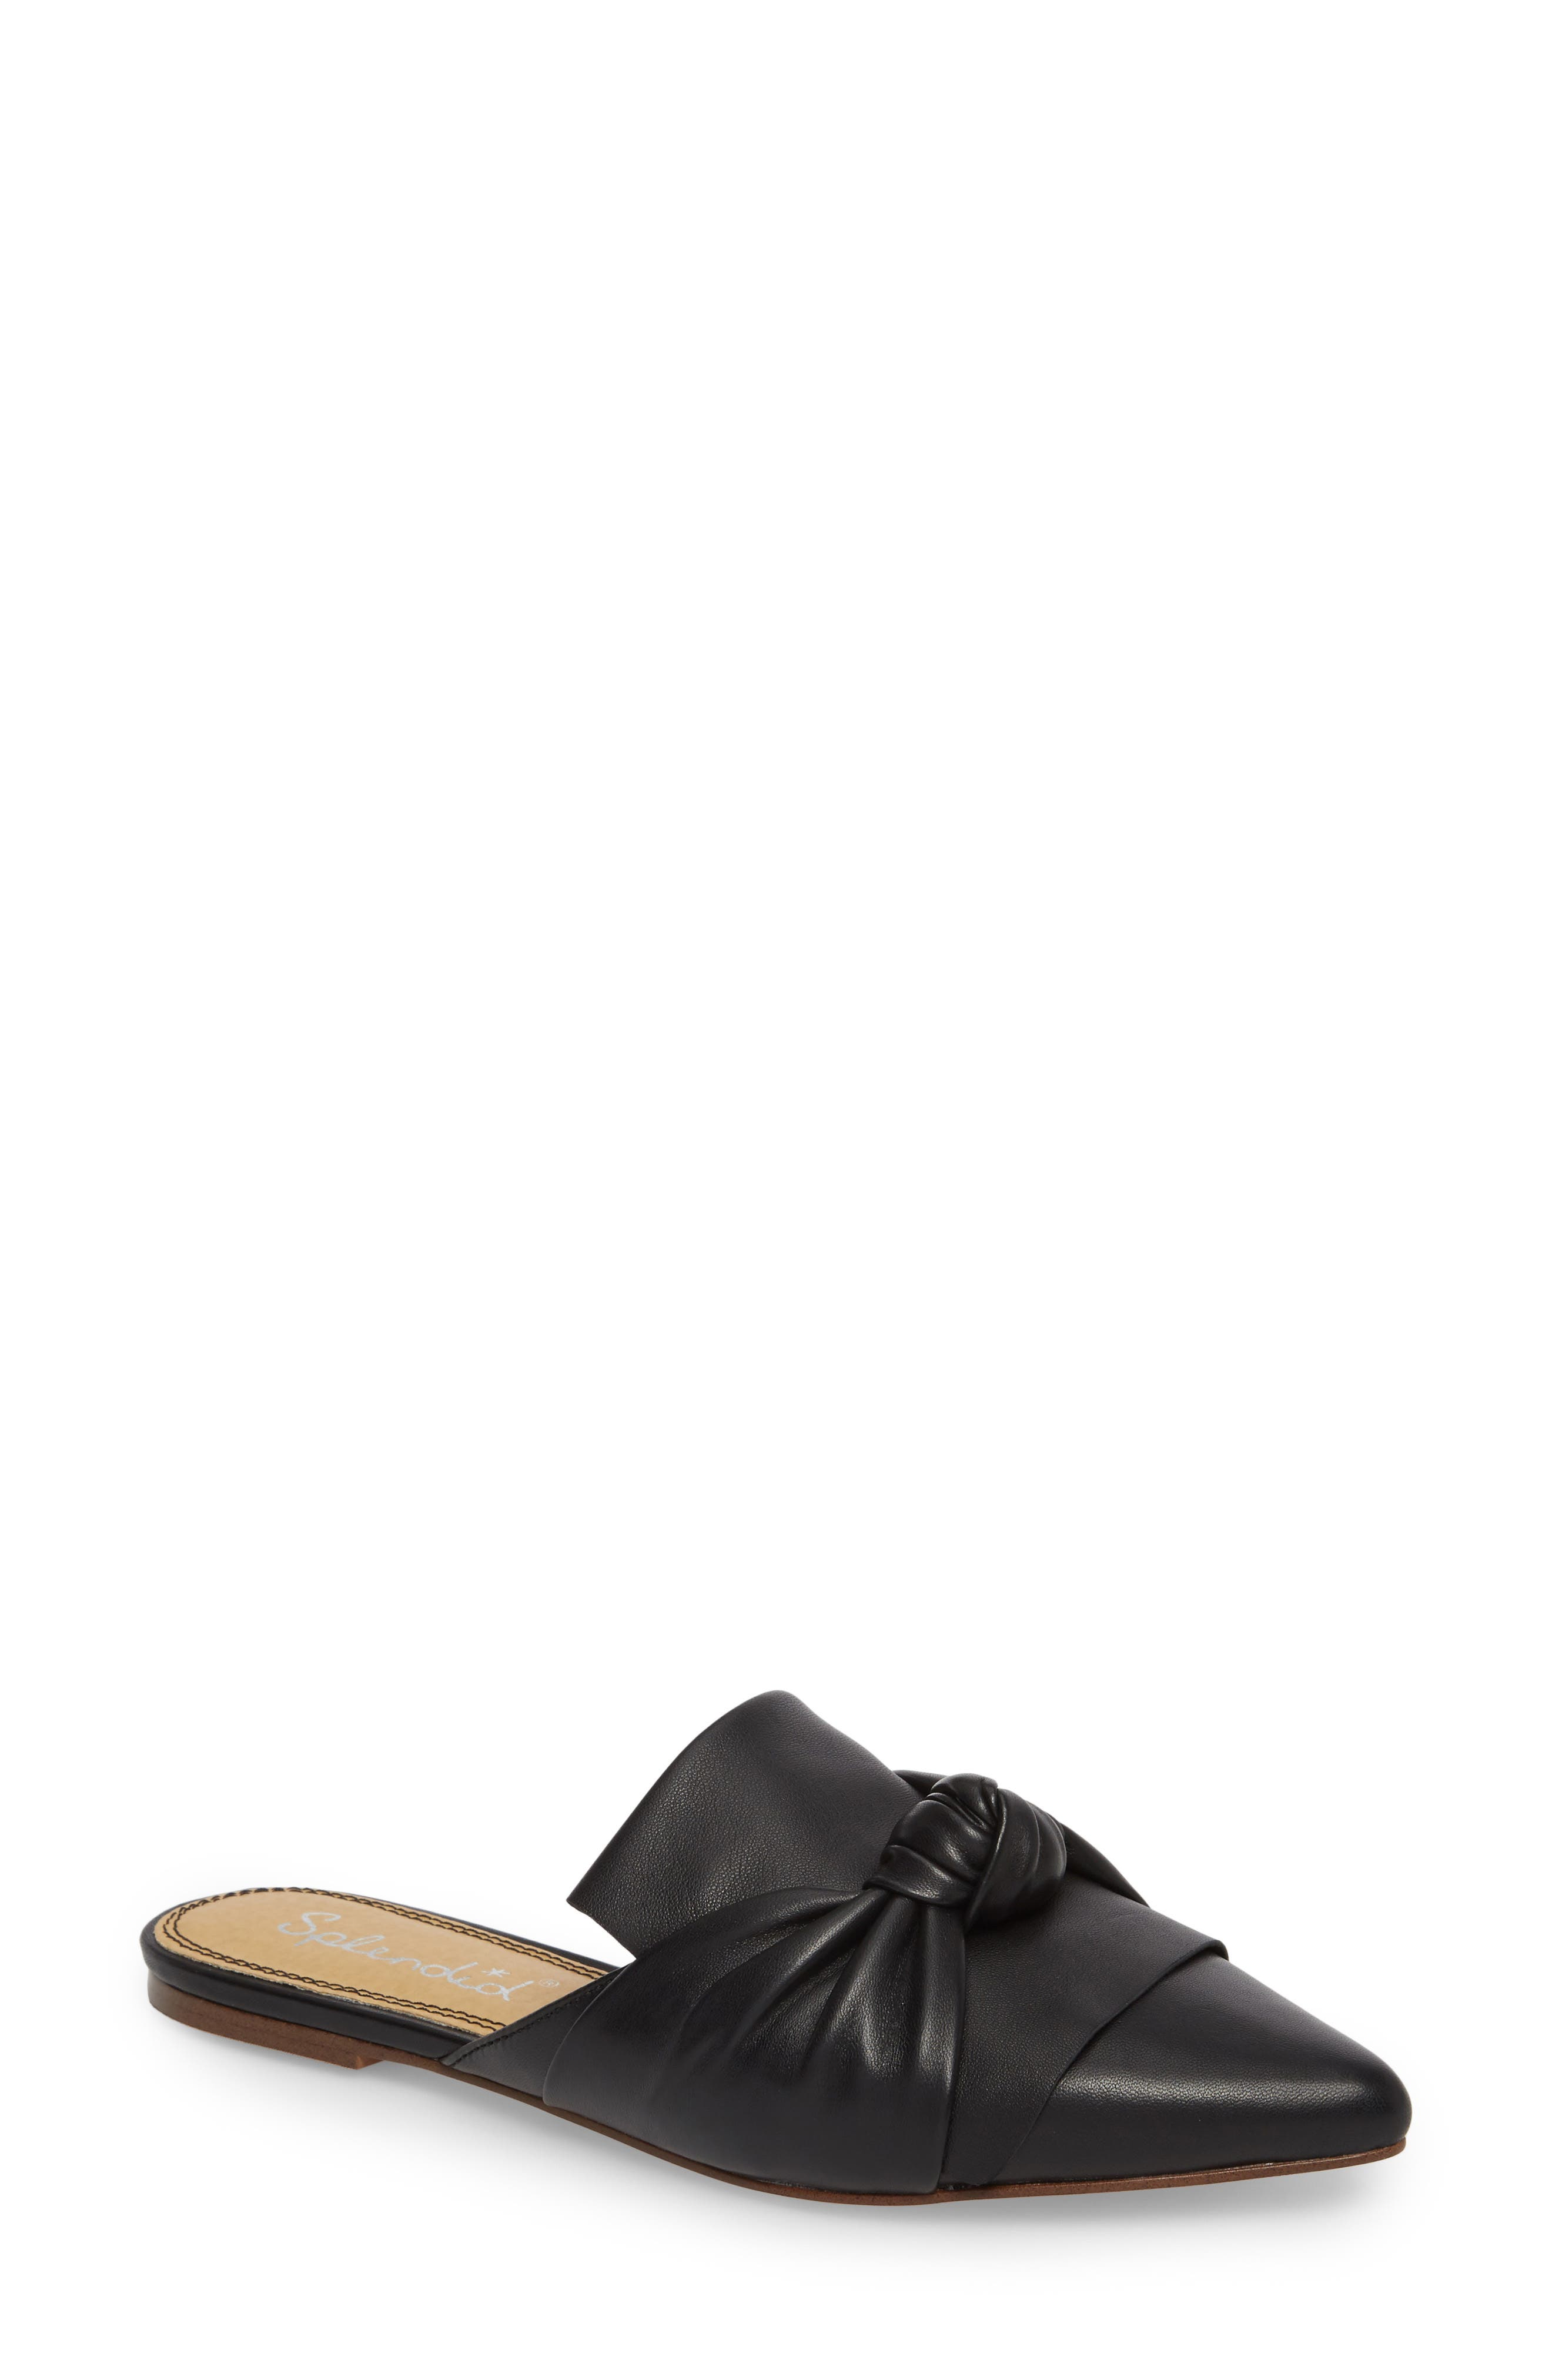 Bassett Knotted Pointy Toe Mule,                         Main,                         color, Black Leather